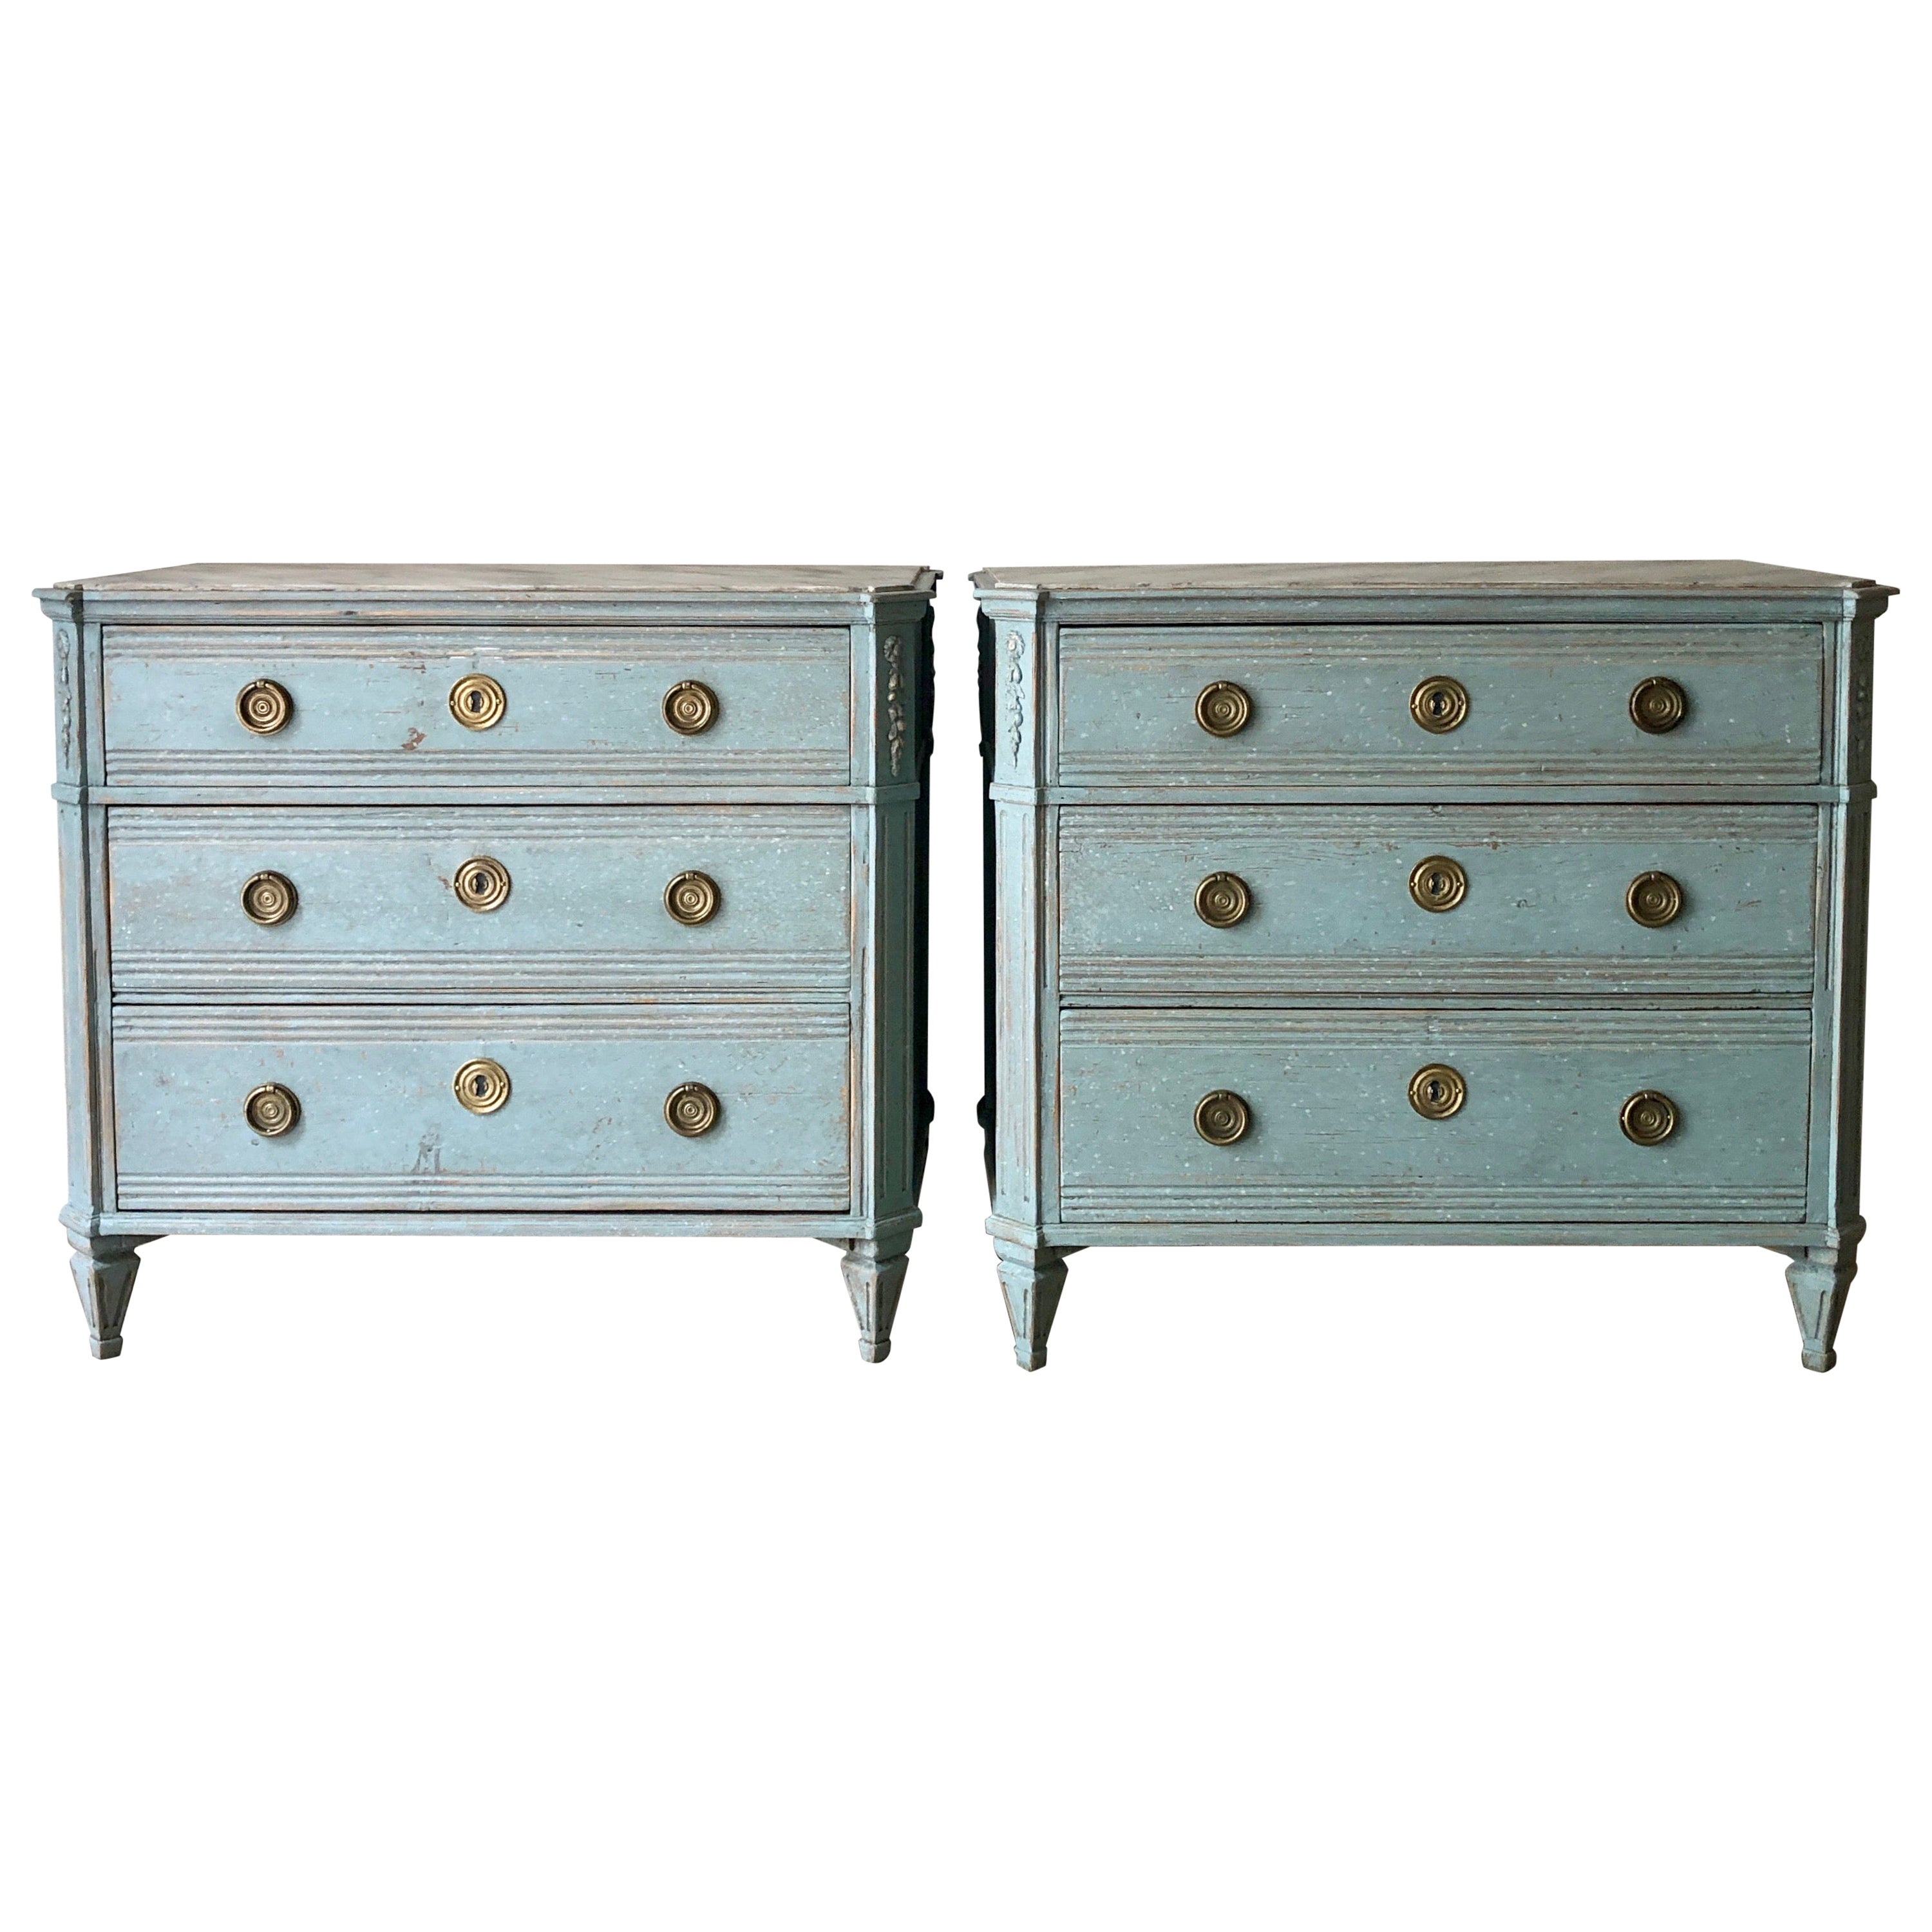 Pair of 19th Century Swedish Painted Chest of Drawers